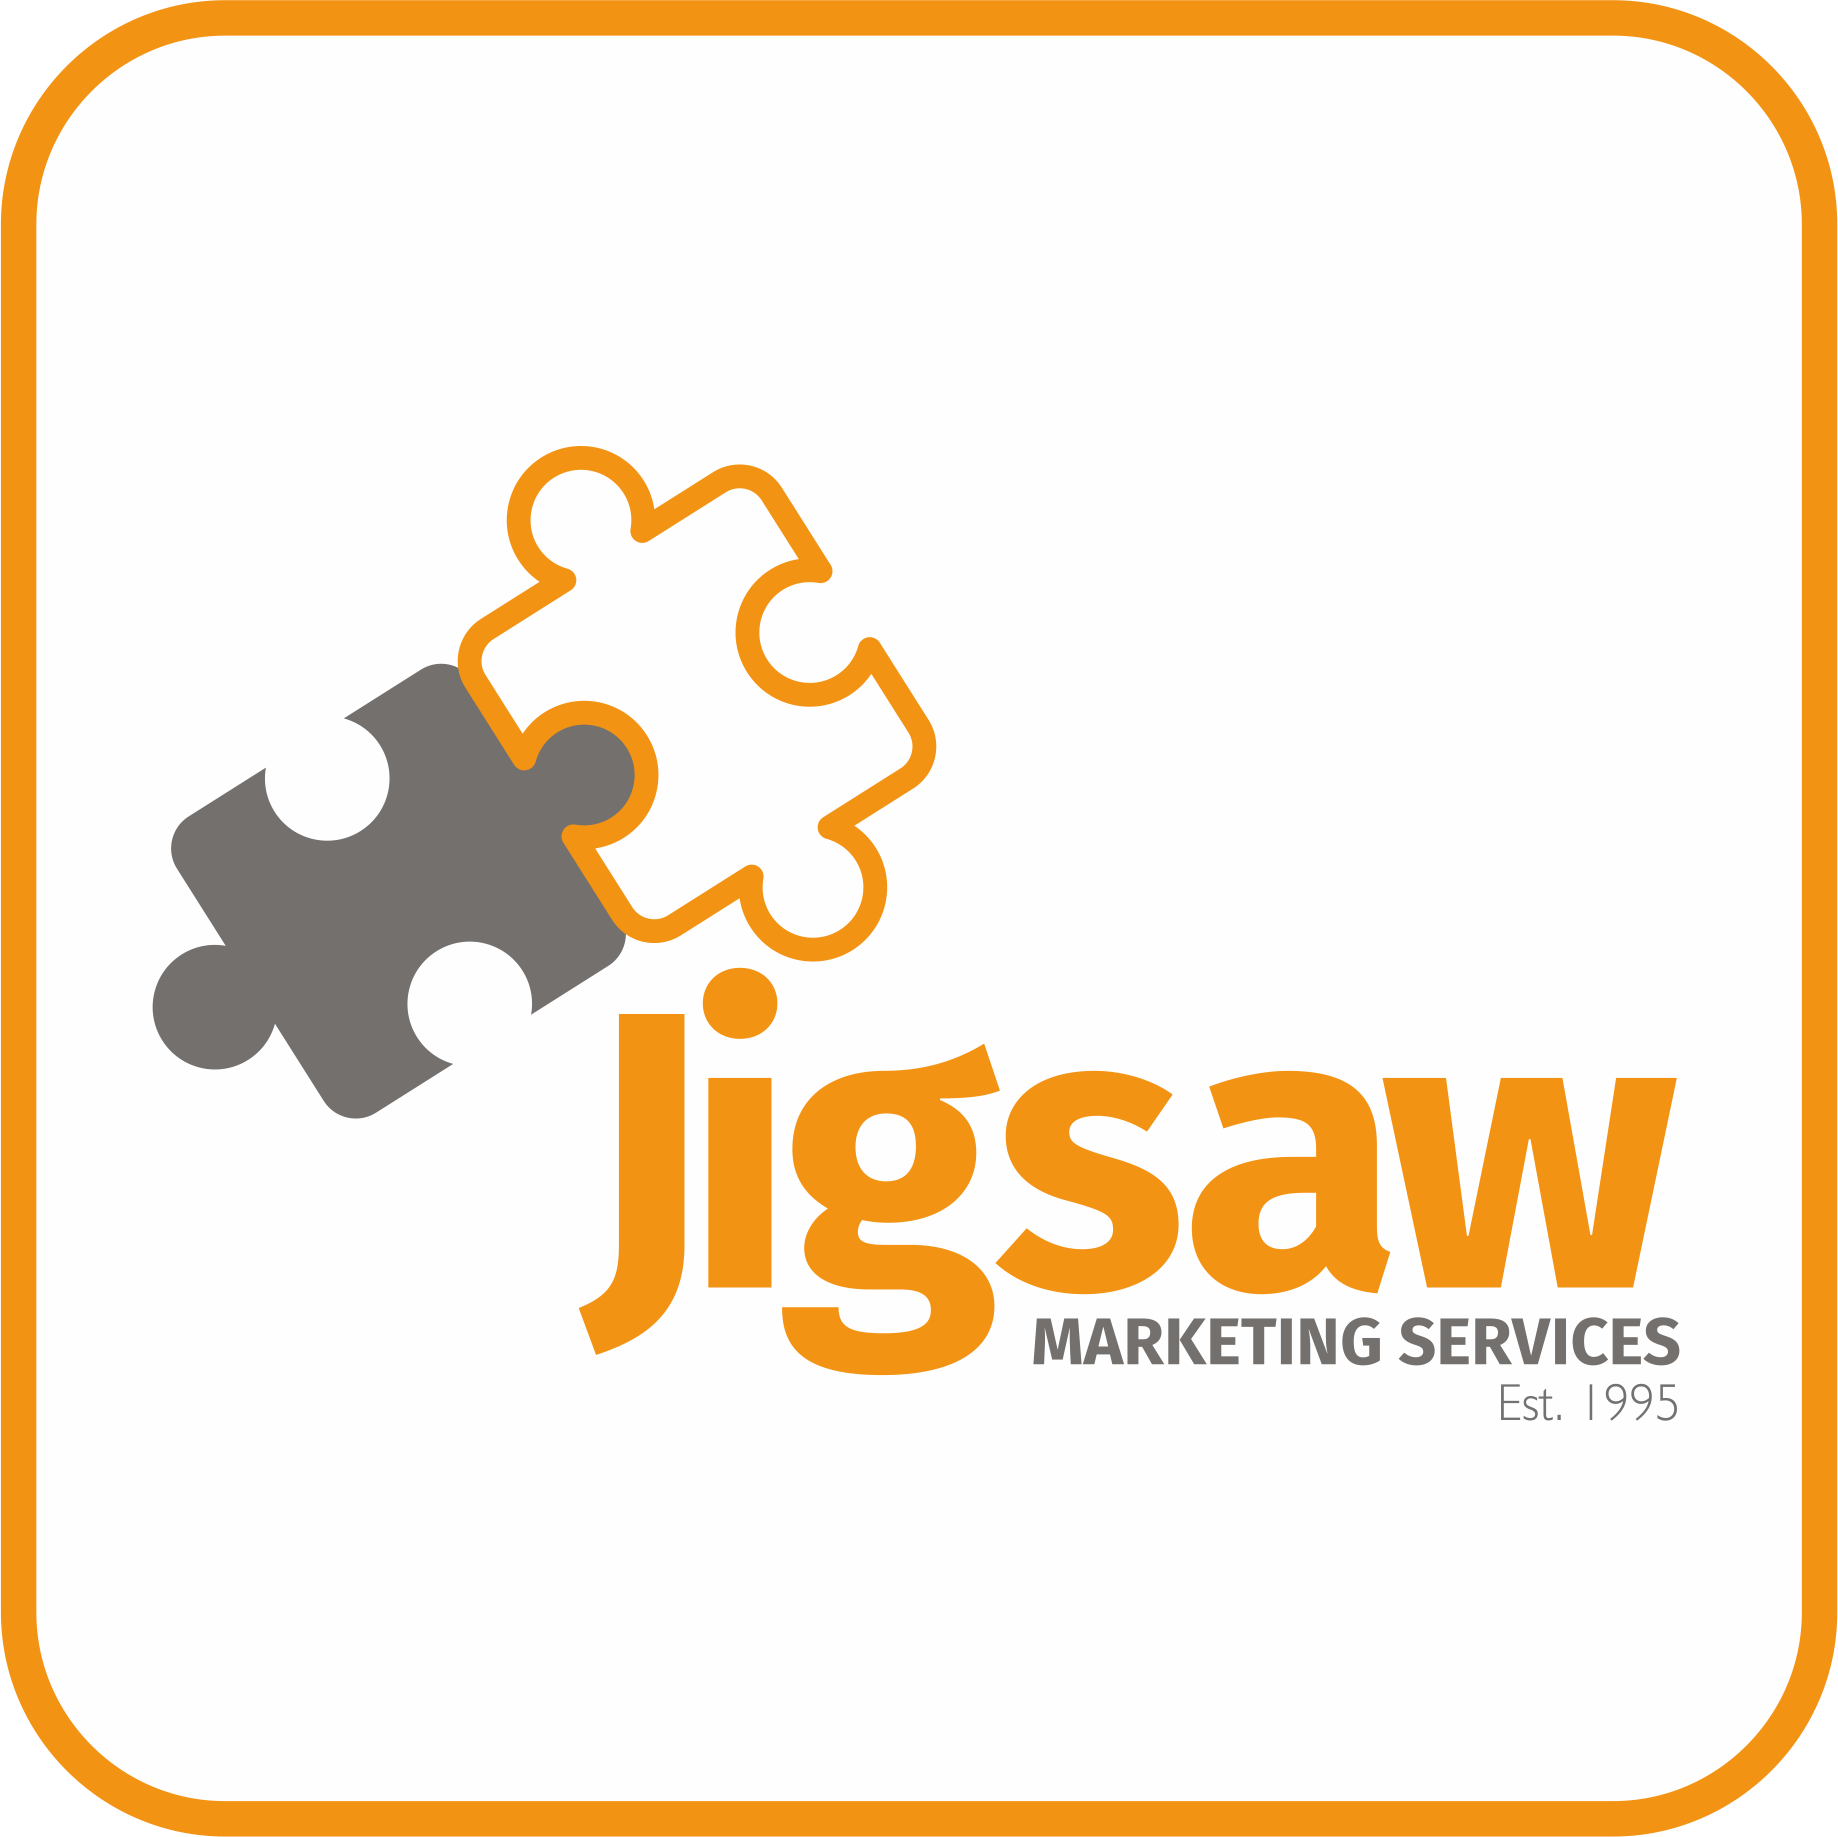 Jigsaw Marketing Services